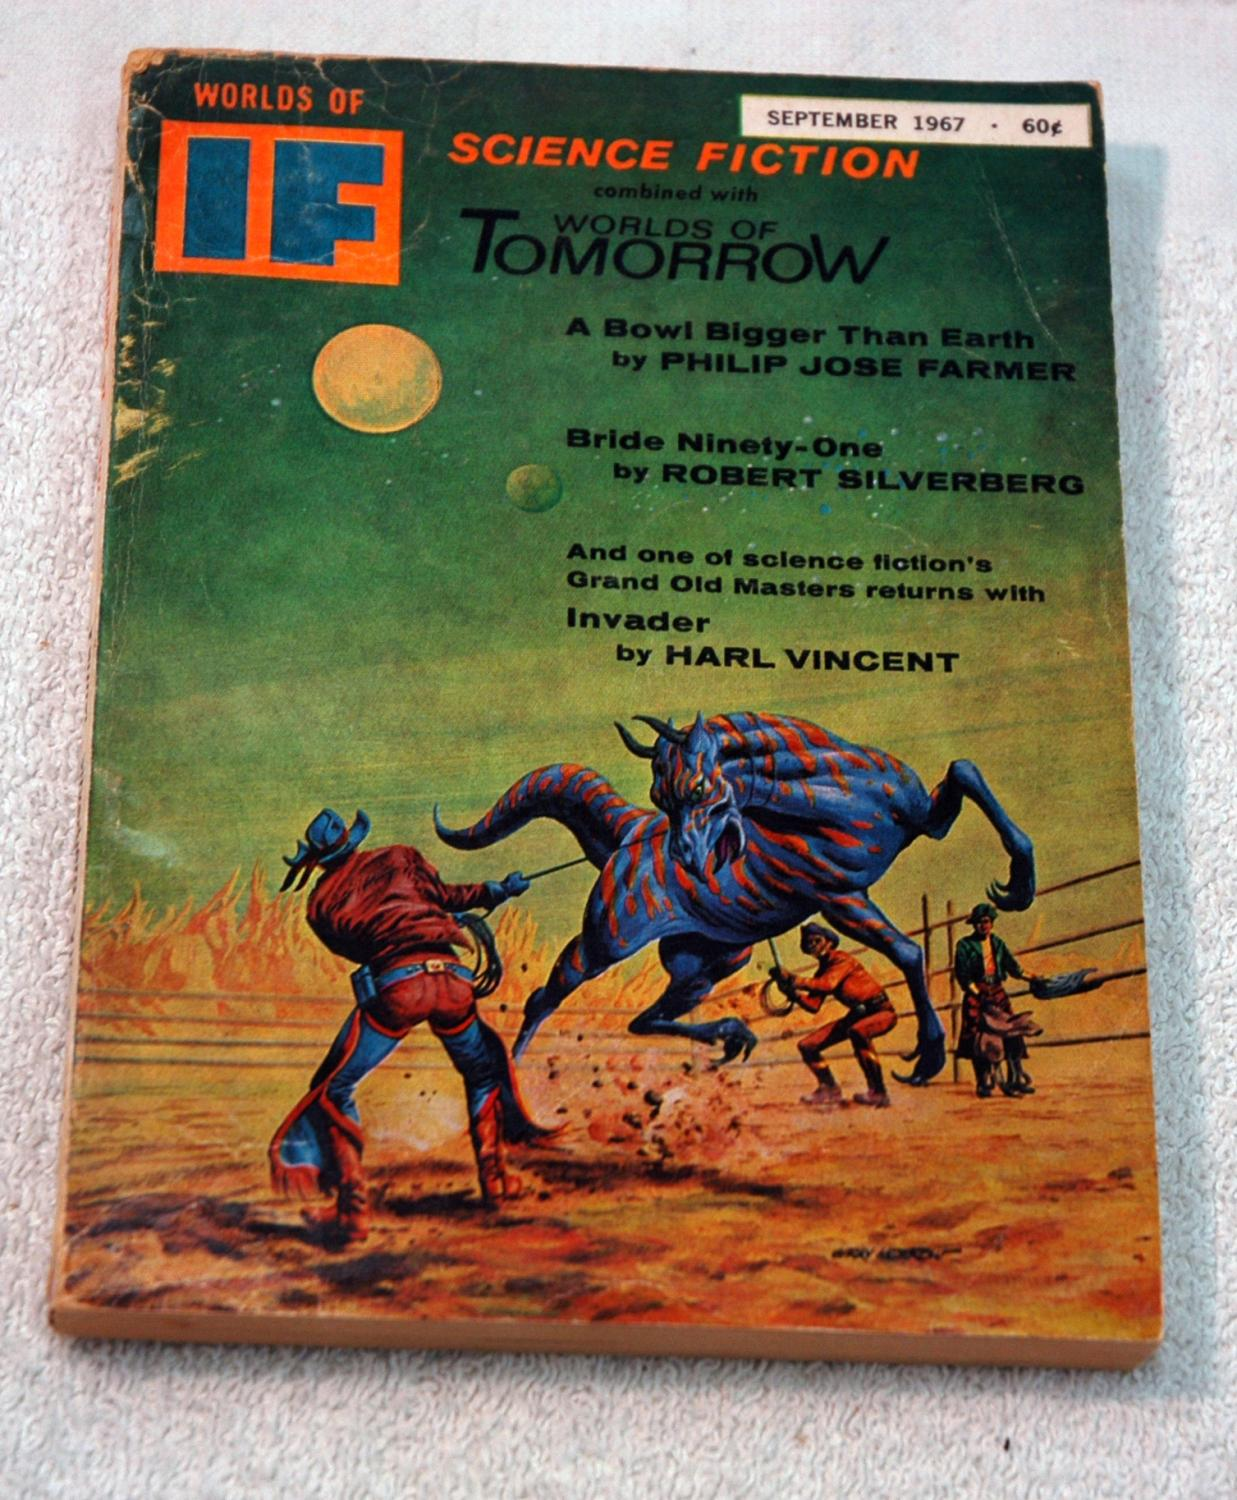 Worlds of If Science Fiction, Vol.17 No.9, September 1967